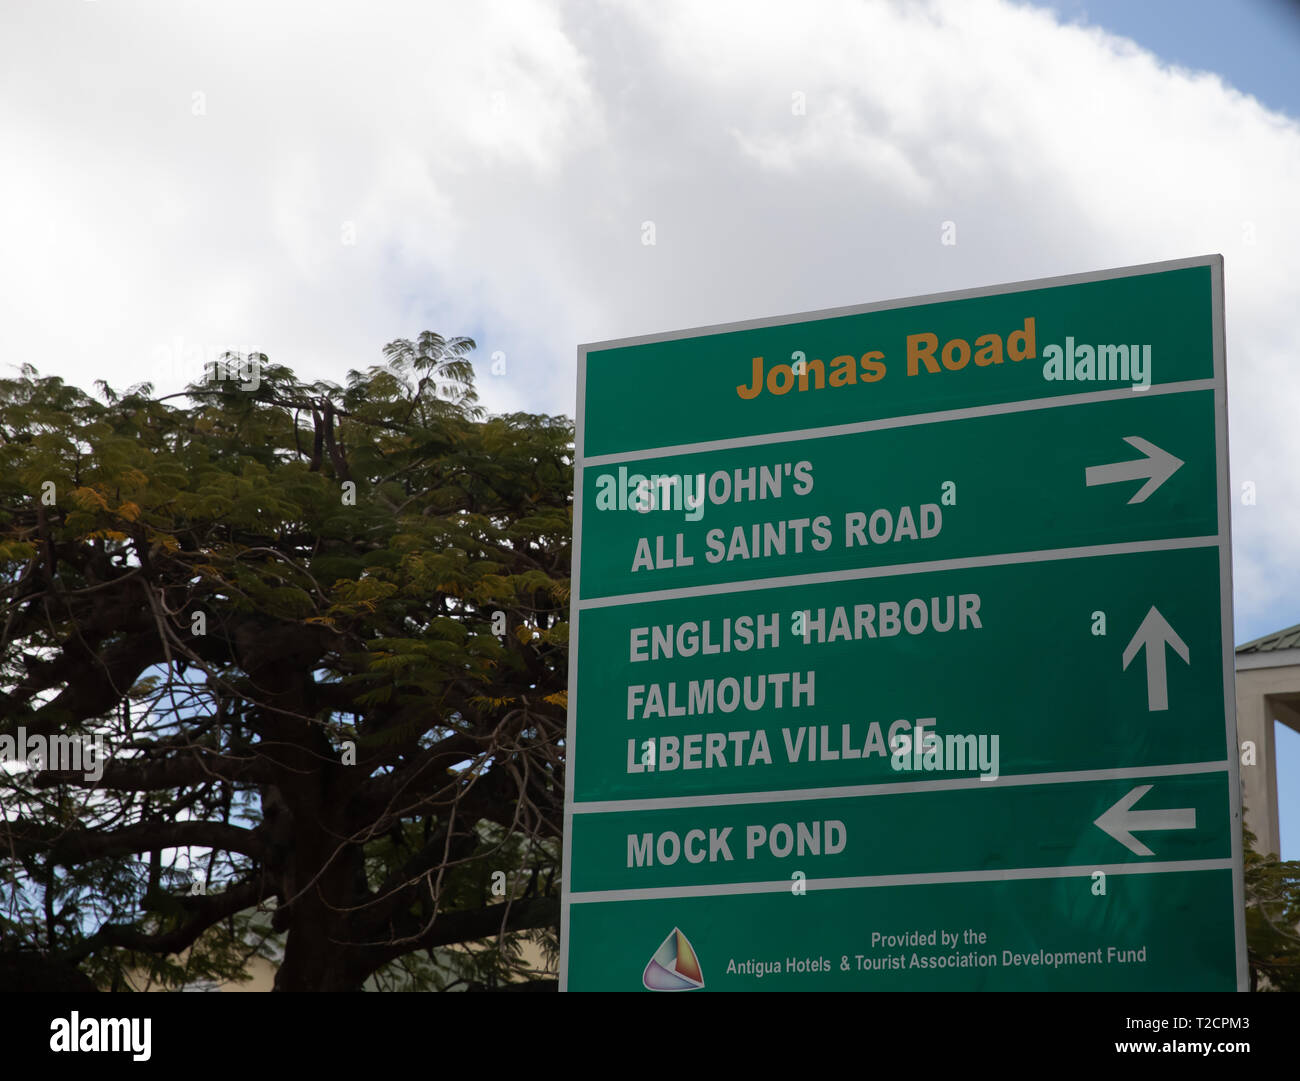 Green road sign in Antigua, The Caribbean - Stock Image